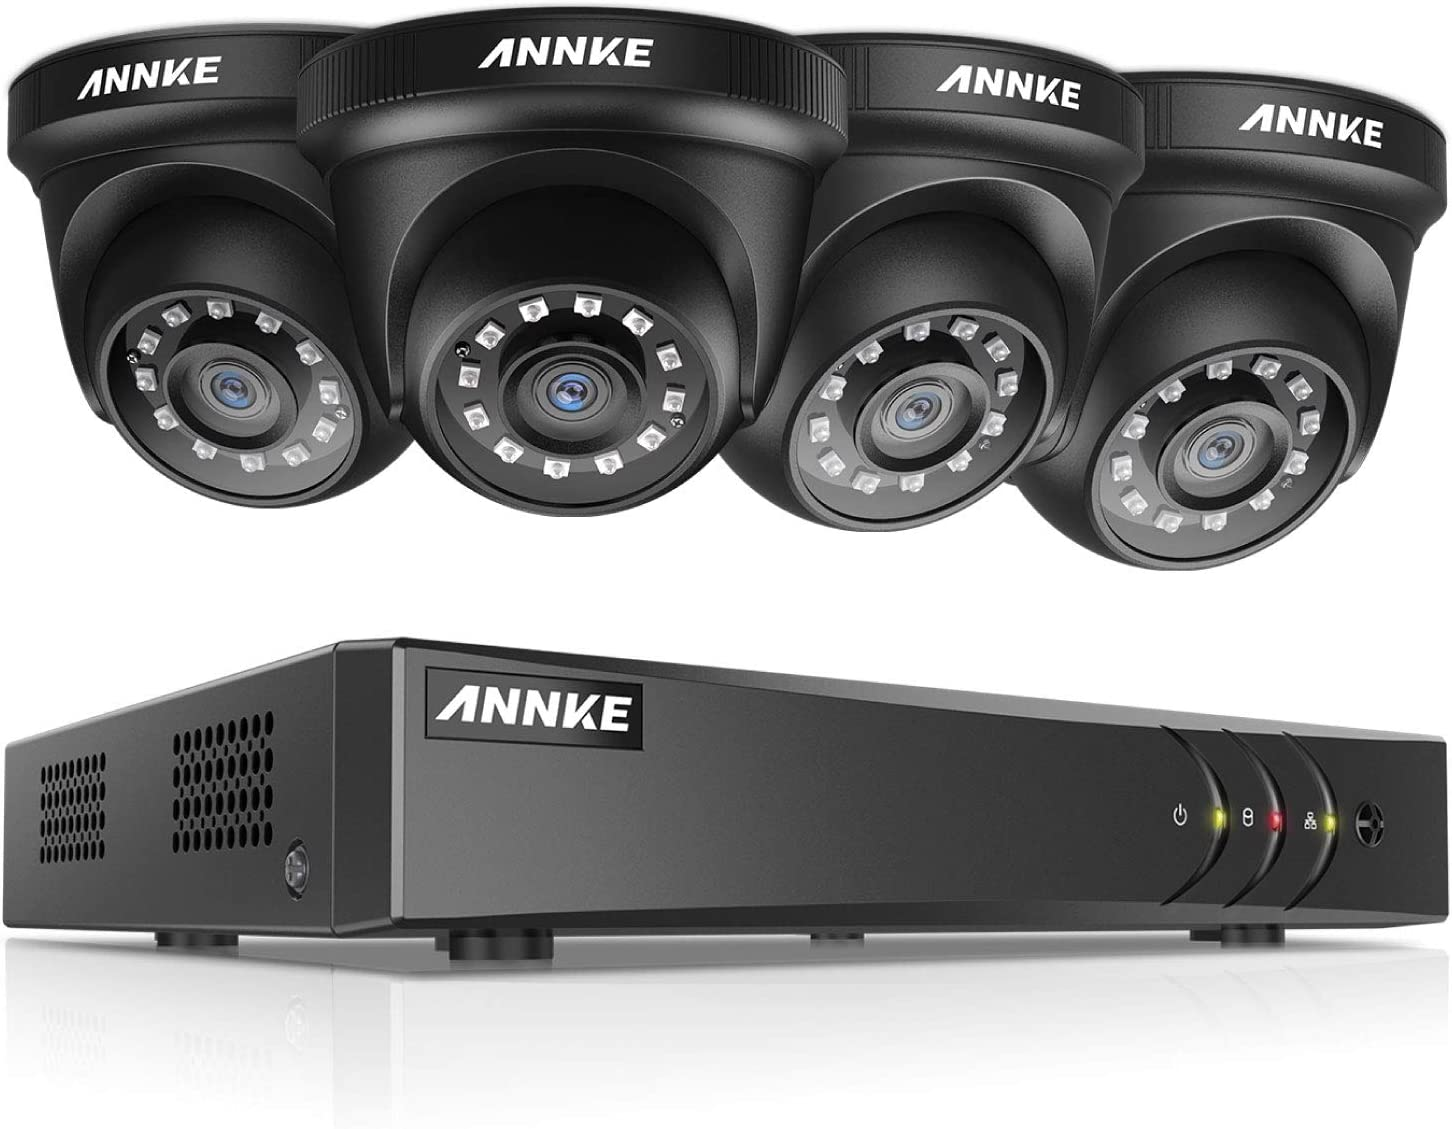 ANNKE Security Cameras System Smart HD 1080P Lite 4 Channels DVR Recorder and 4 1080P HD Outdoor Dome Camera, All-Weather Adaptation, Email Alert with Images, Mobile App ANNKE Vision, NO HDD